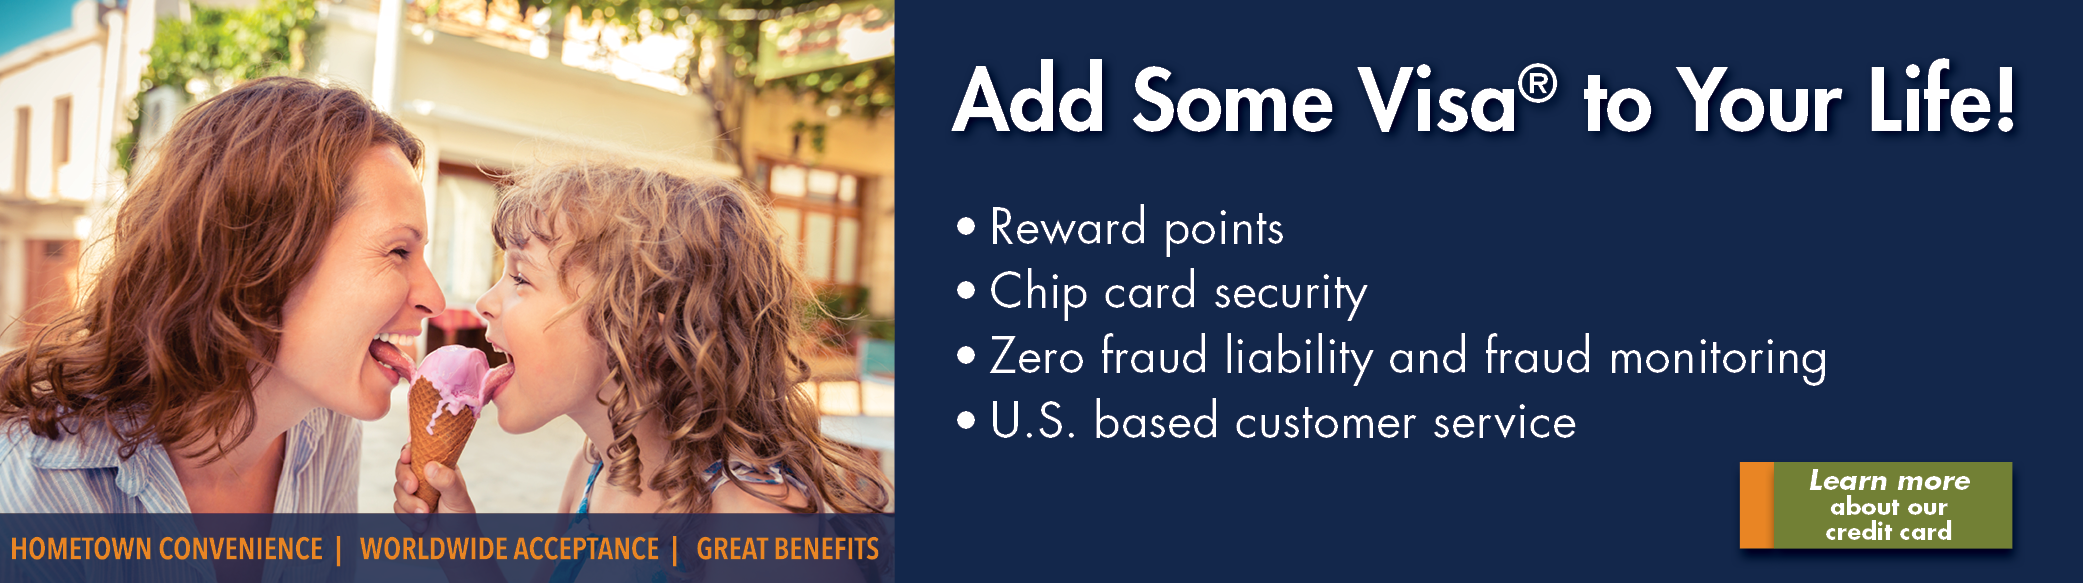 Add Some Visa® to Your Life